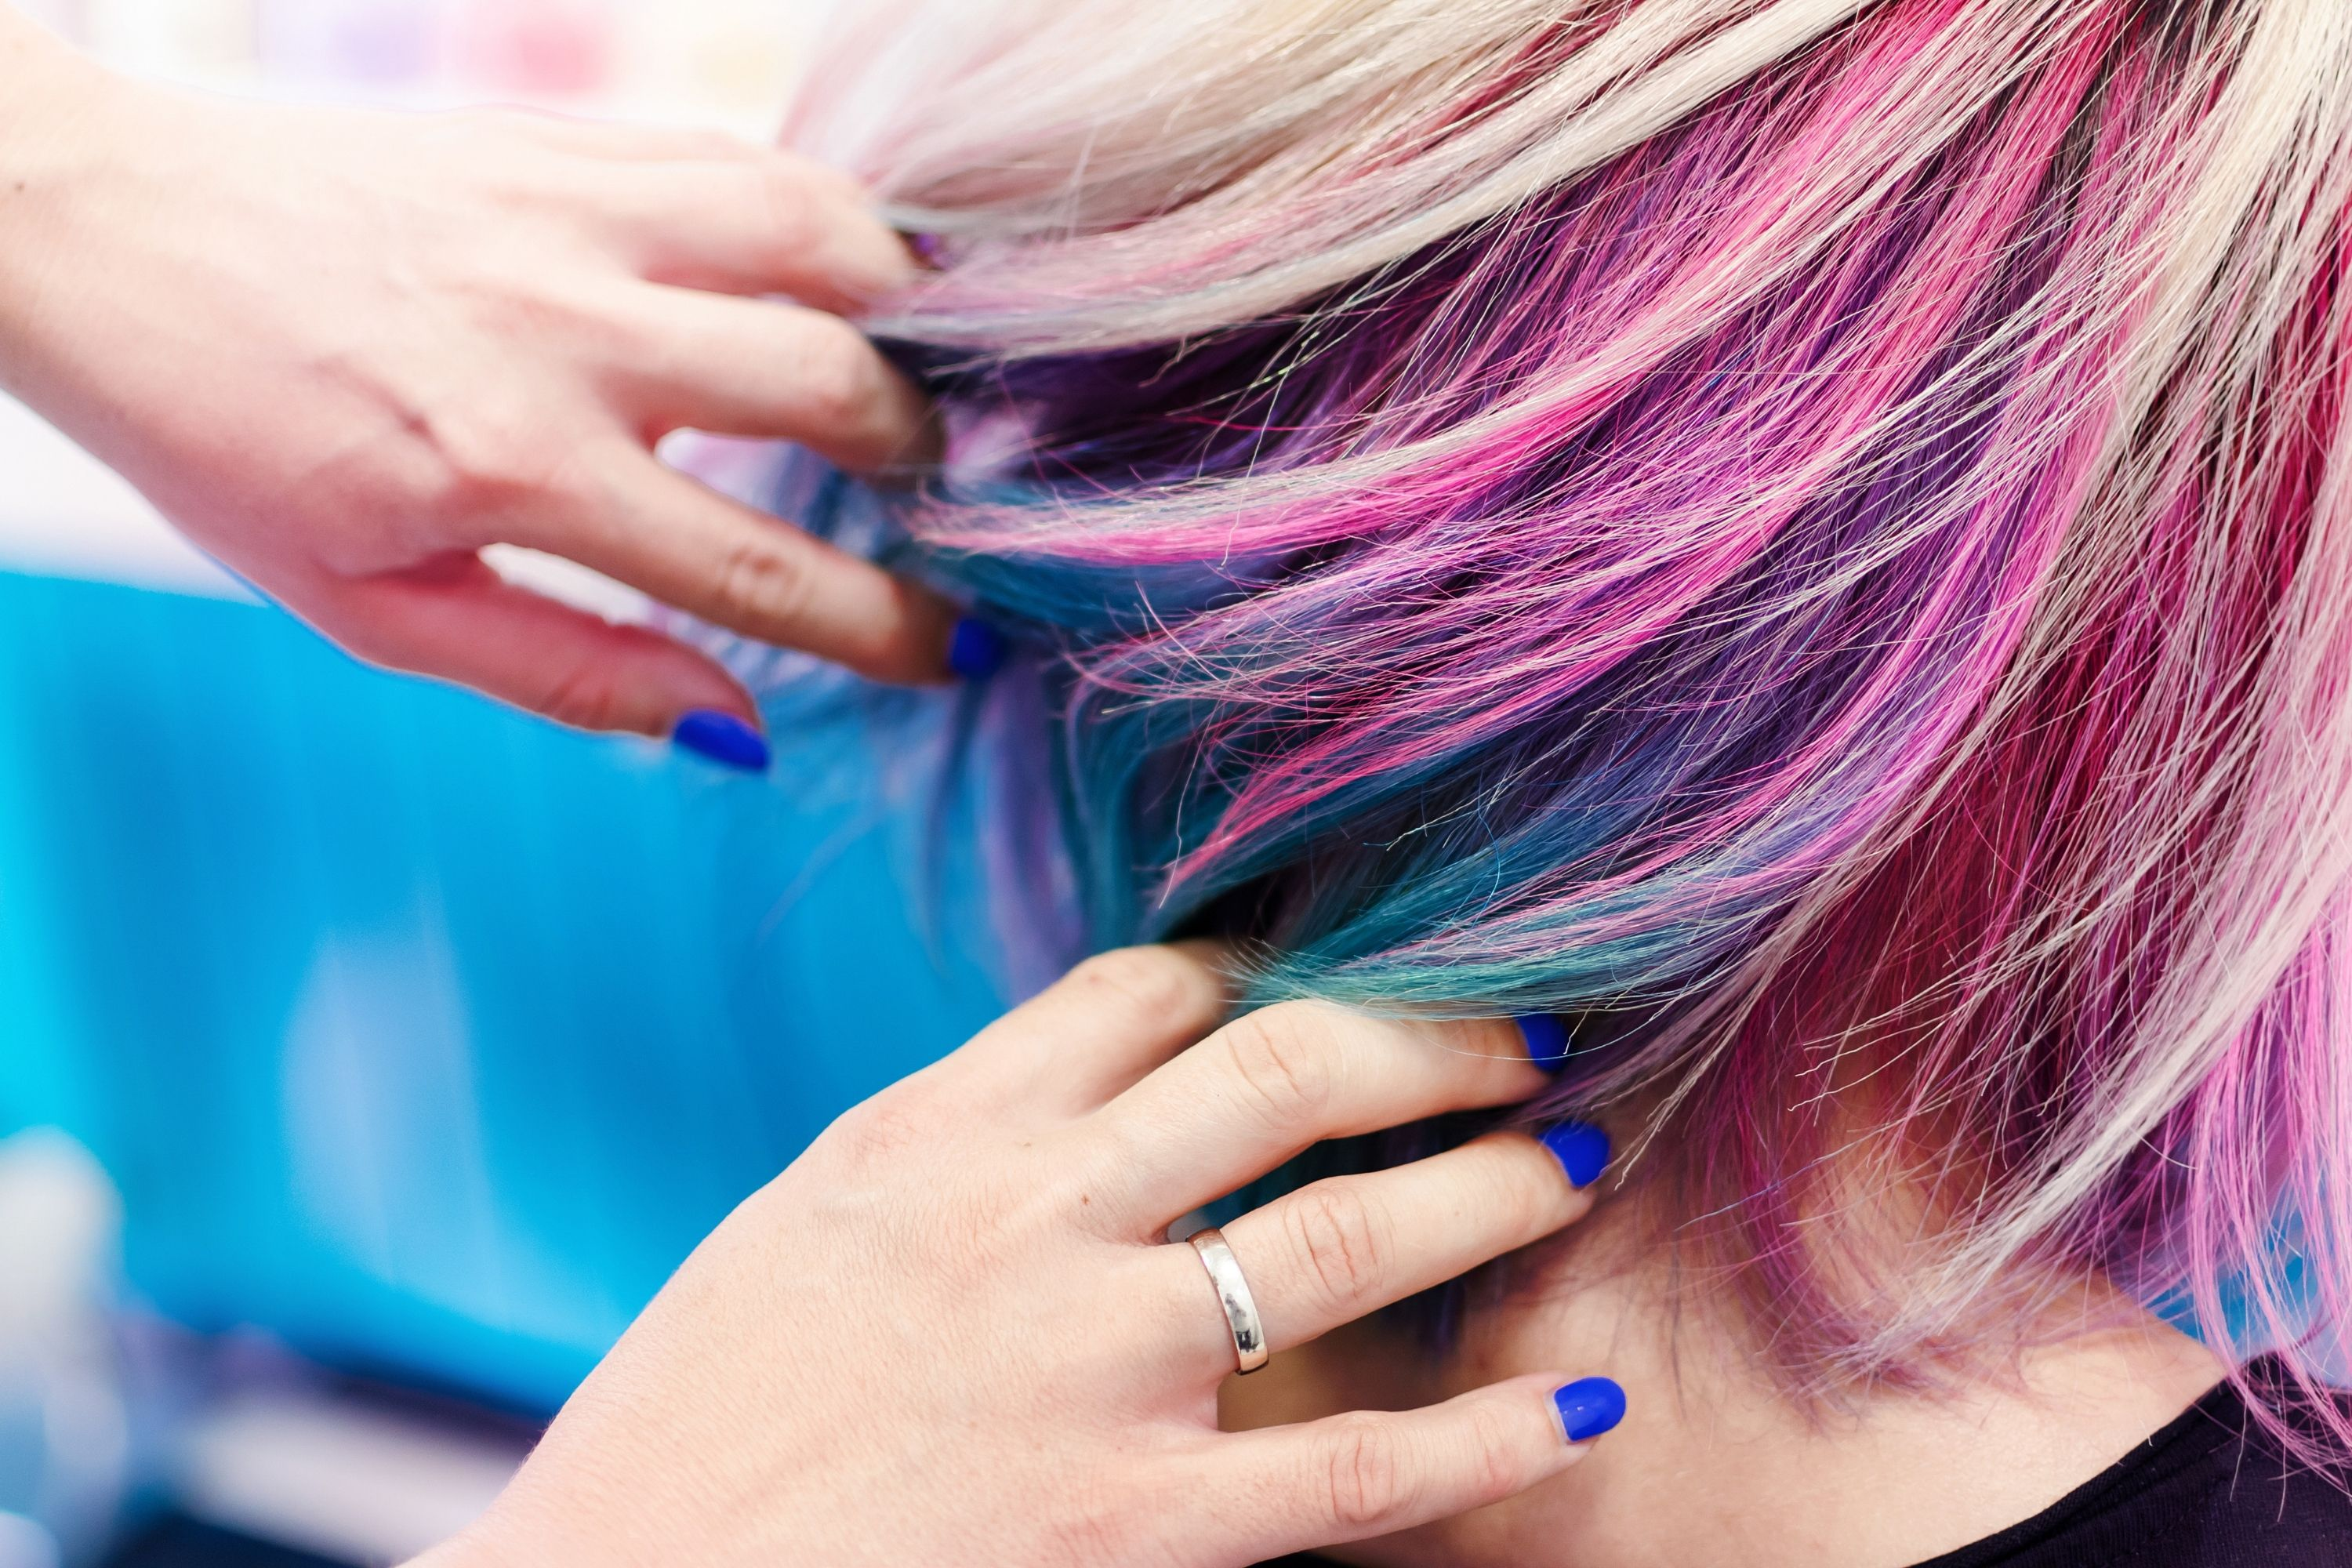 How to Dye Over Red Hair to Make It Purple